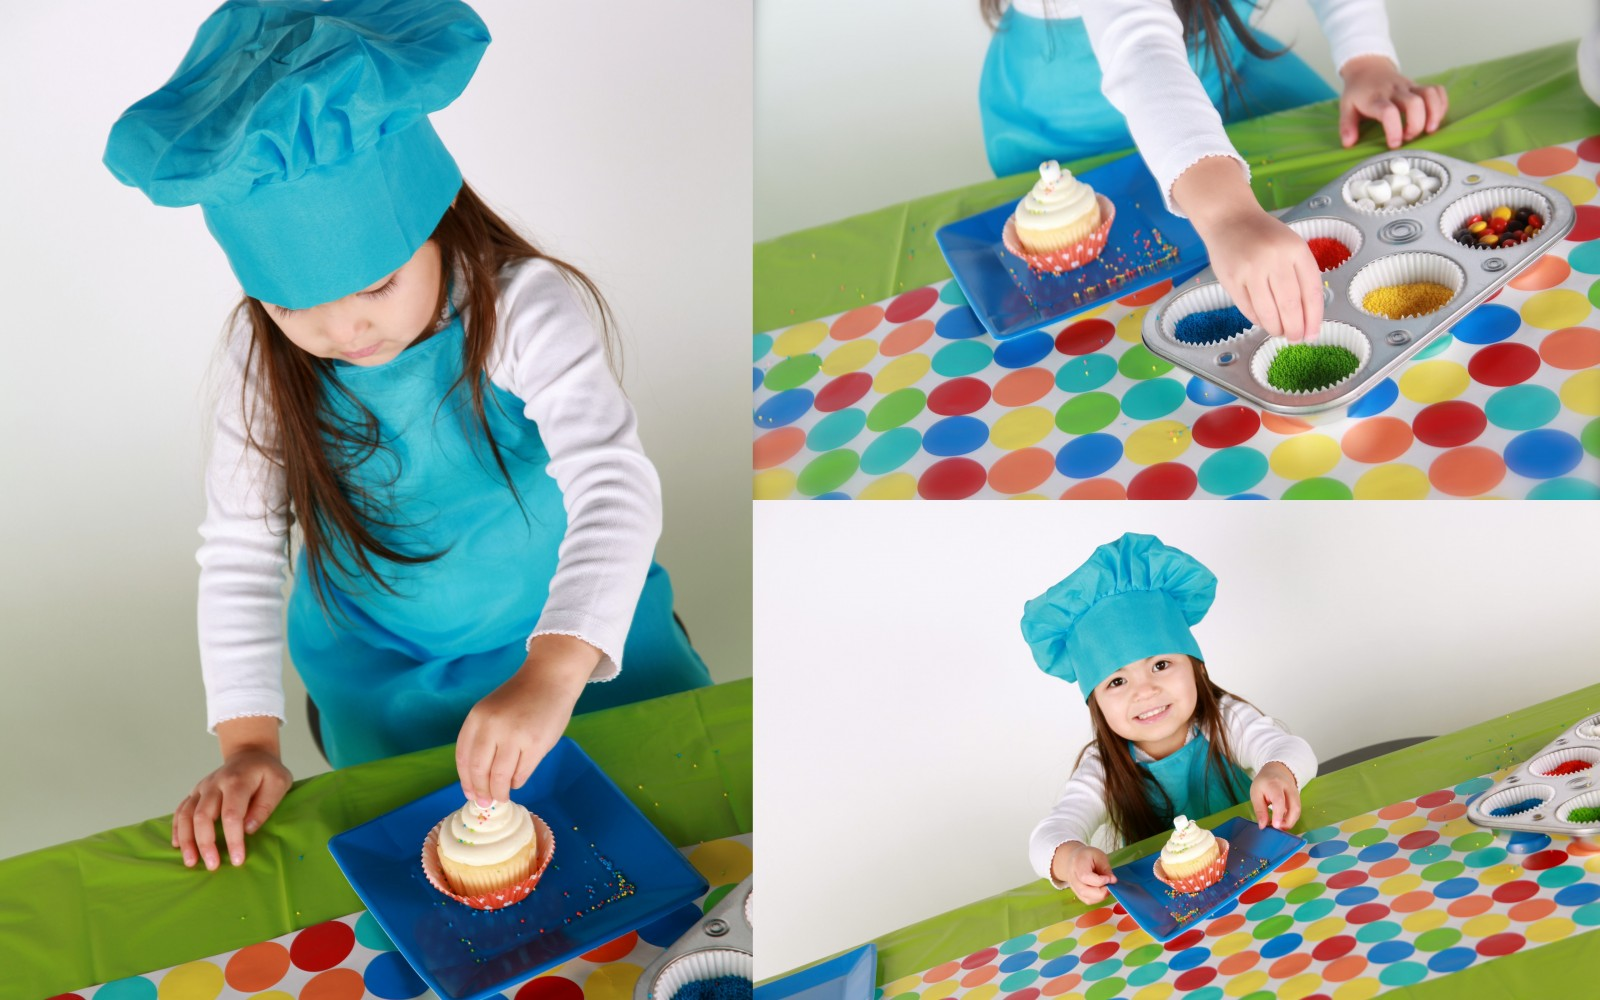 CookingThemed Kids Birthday Party On a Budget